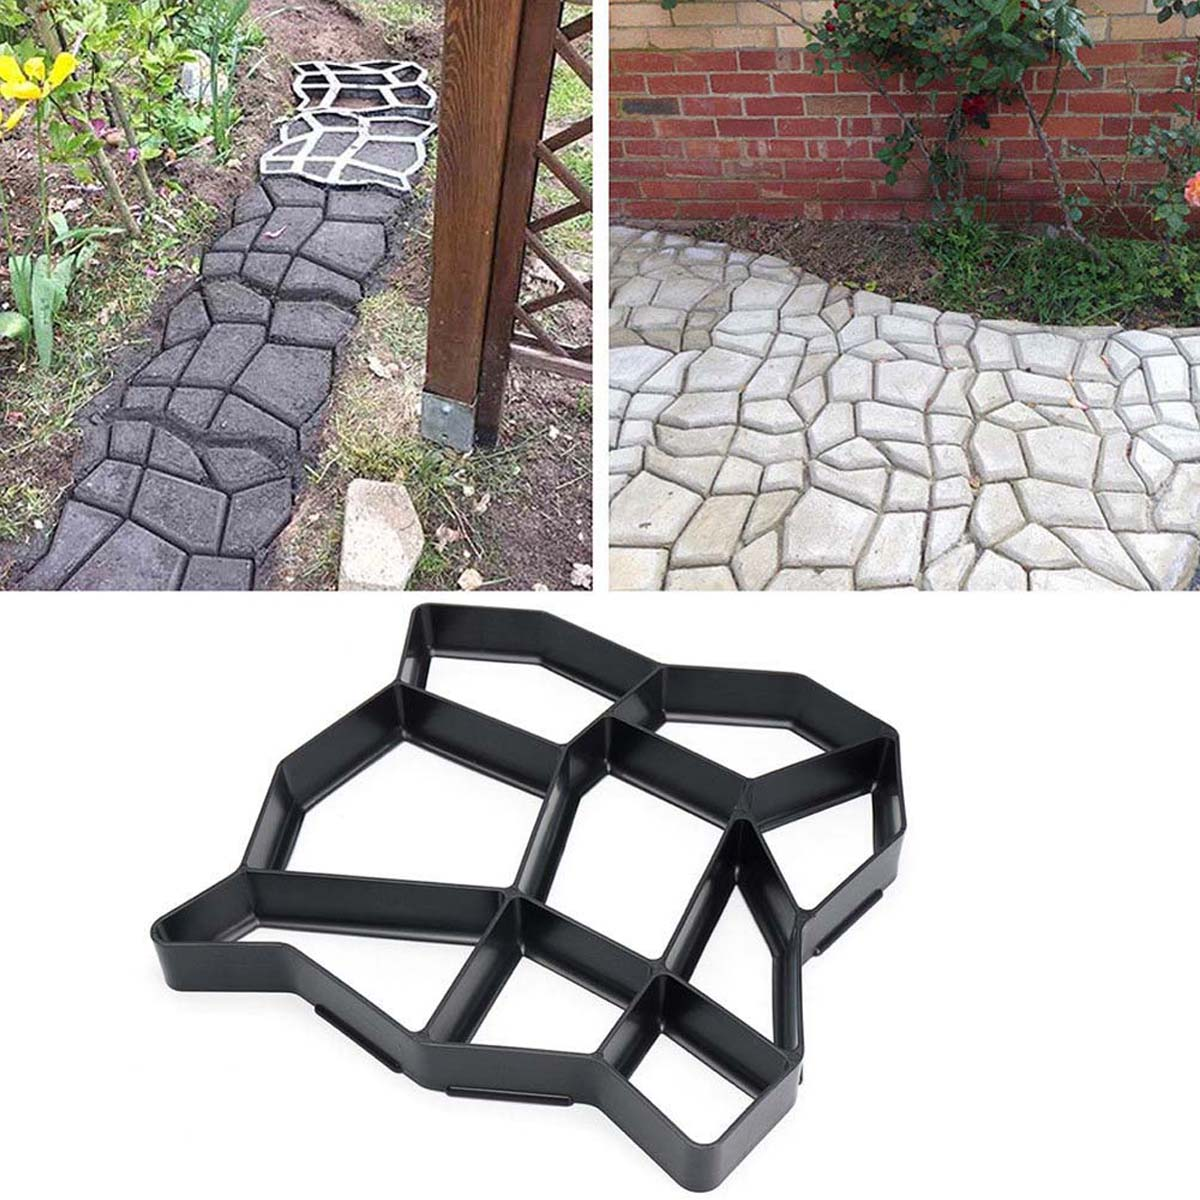 cheapest Garden Antique Making Tools Square Brick Home Landscape Road Concrete Molds DIY Stepping Stone Casting Craft Yard Decor Paving